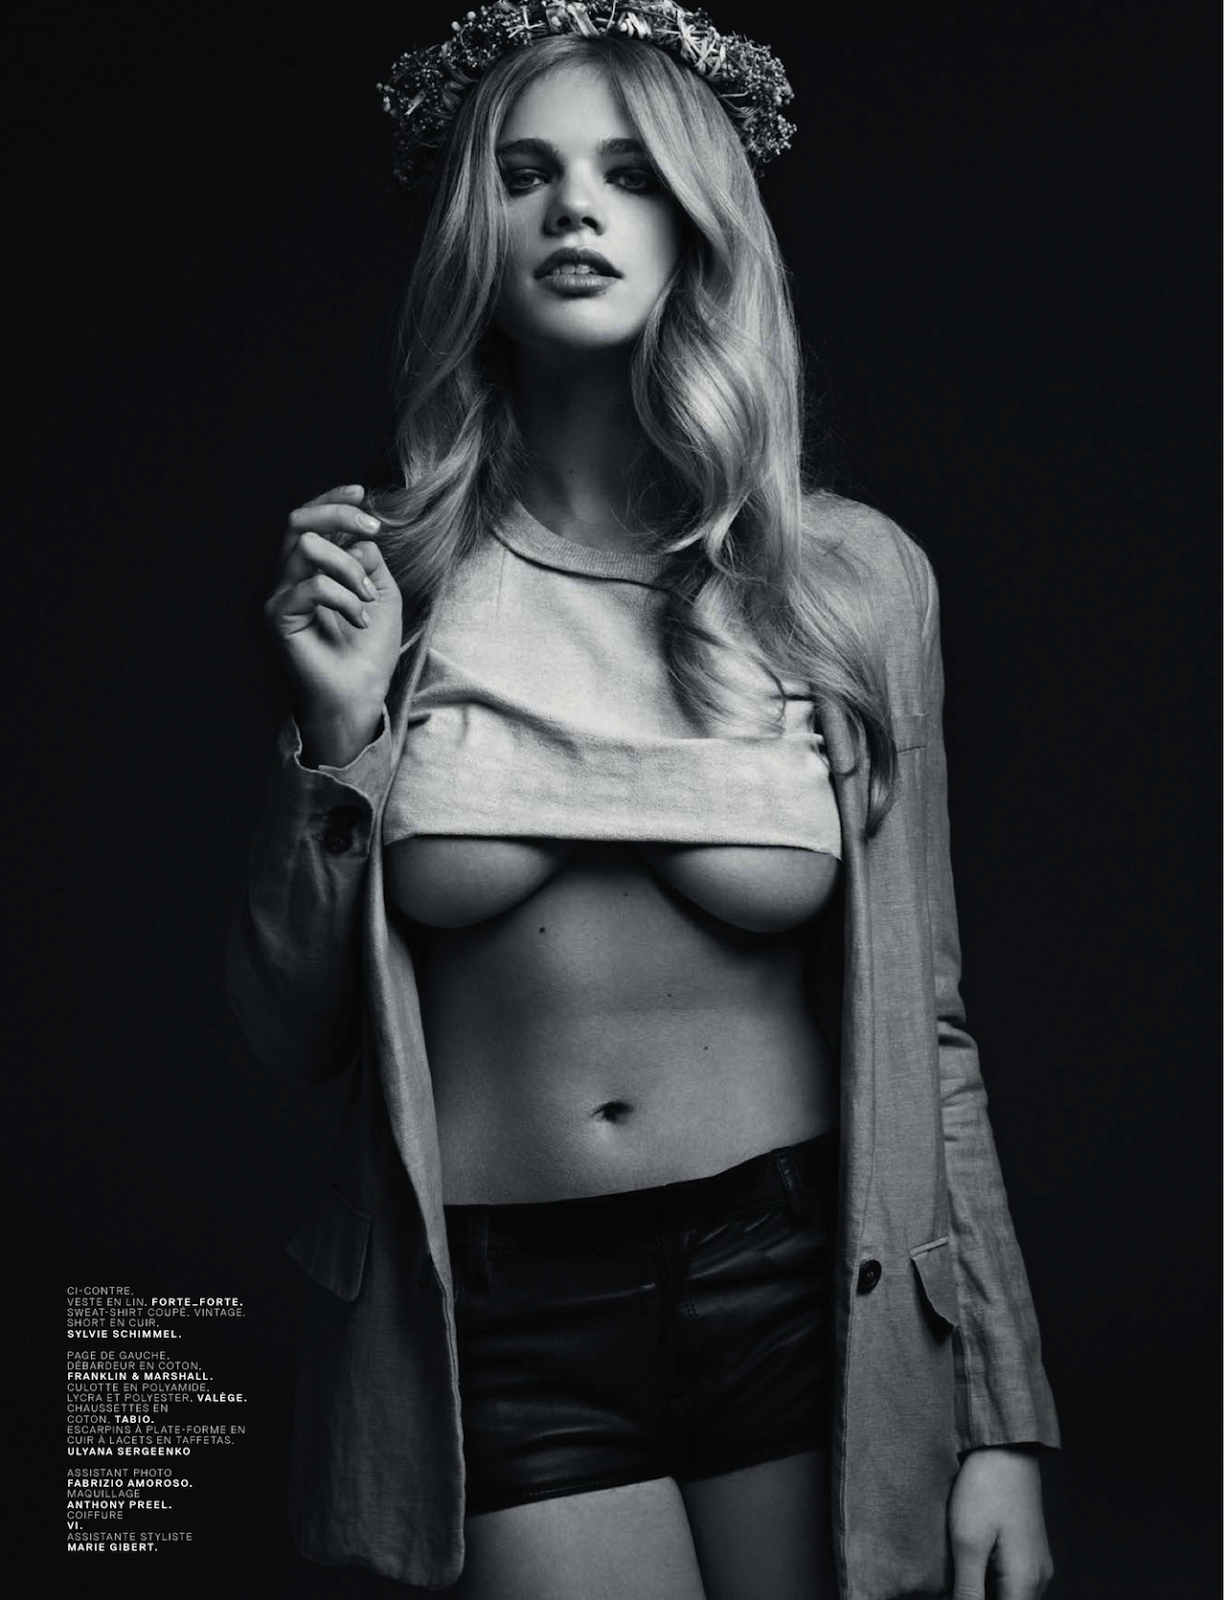 Cicciolinas Valerie Van Der Graaf And Amber Anderson By Stian Foss For Jalouse May 2013 17